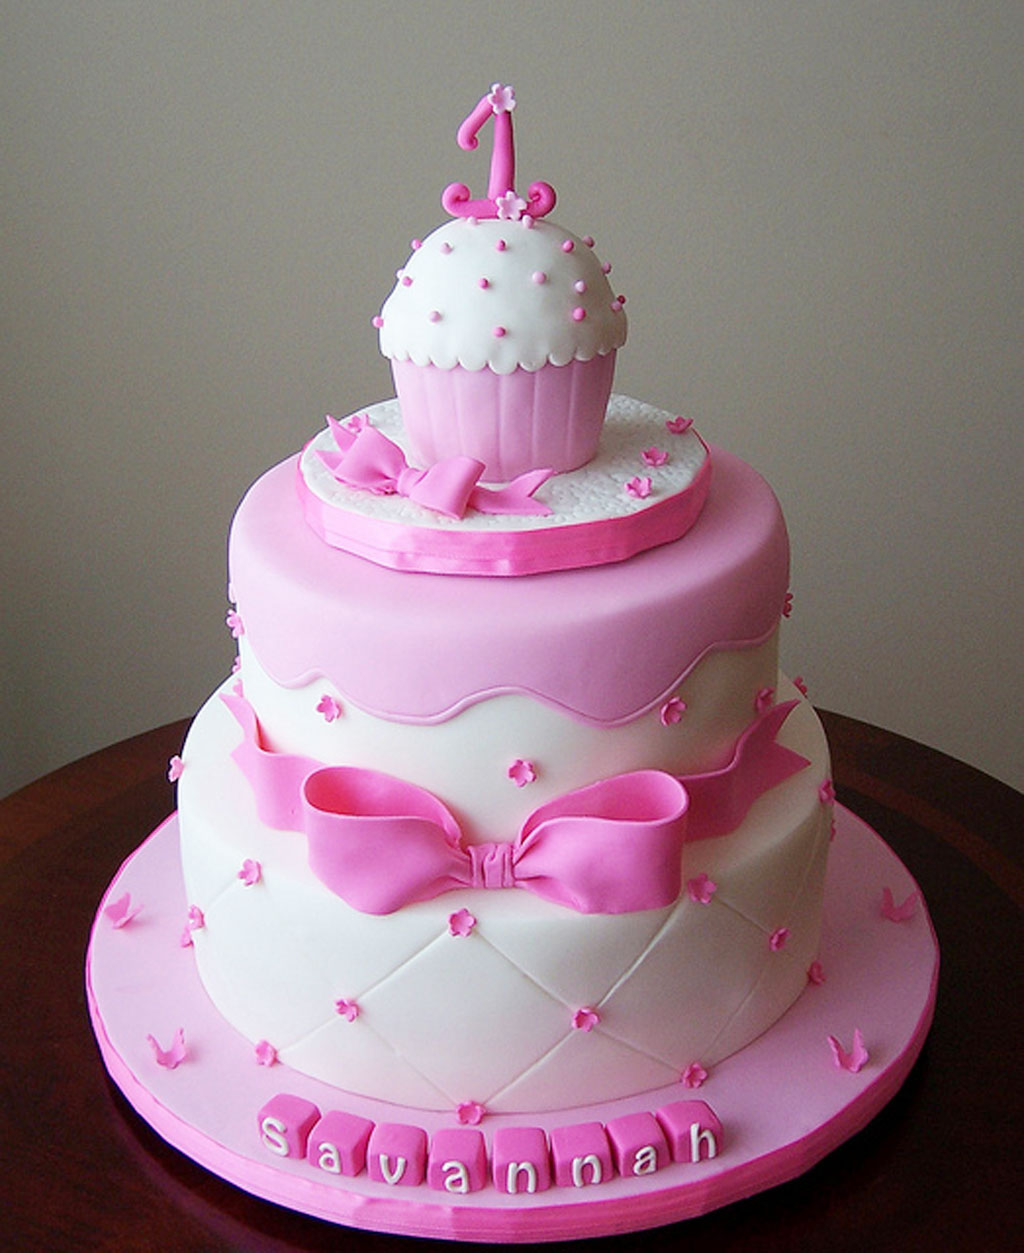 Cake Images In Birthday : Birthday cakes for girls images, pictures, wallpapers and ...